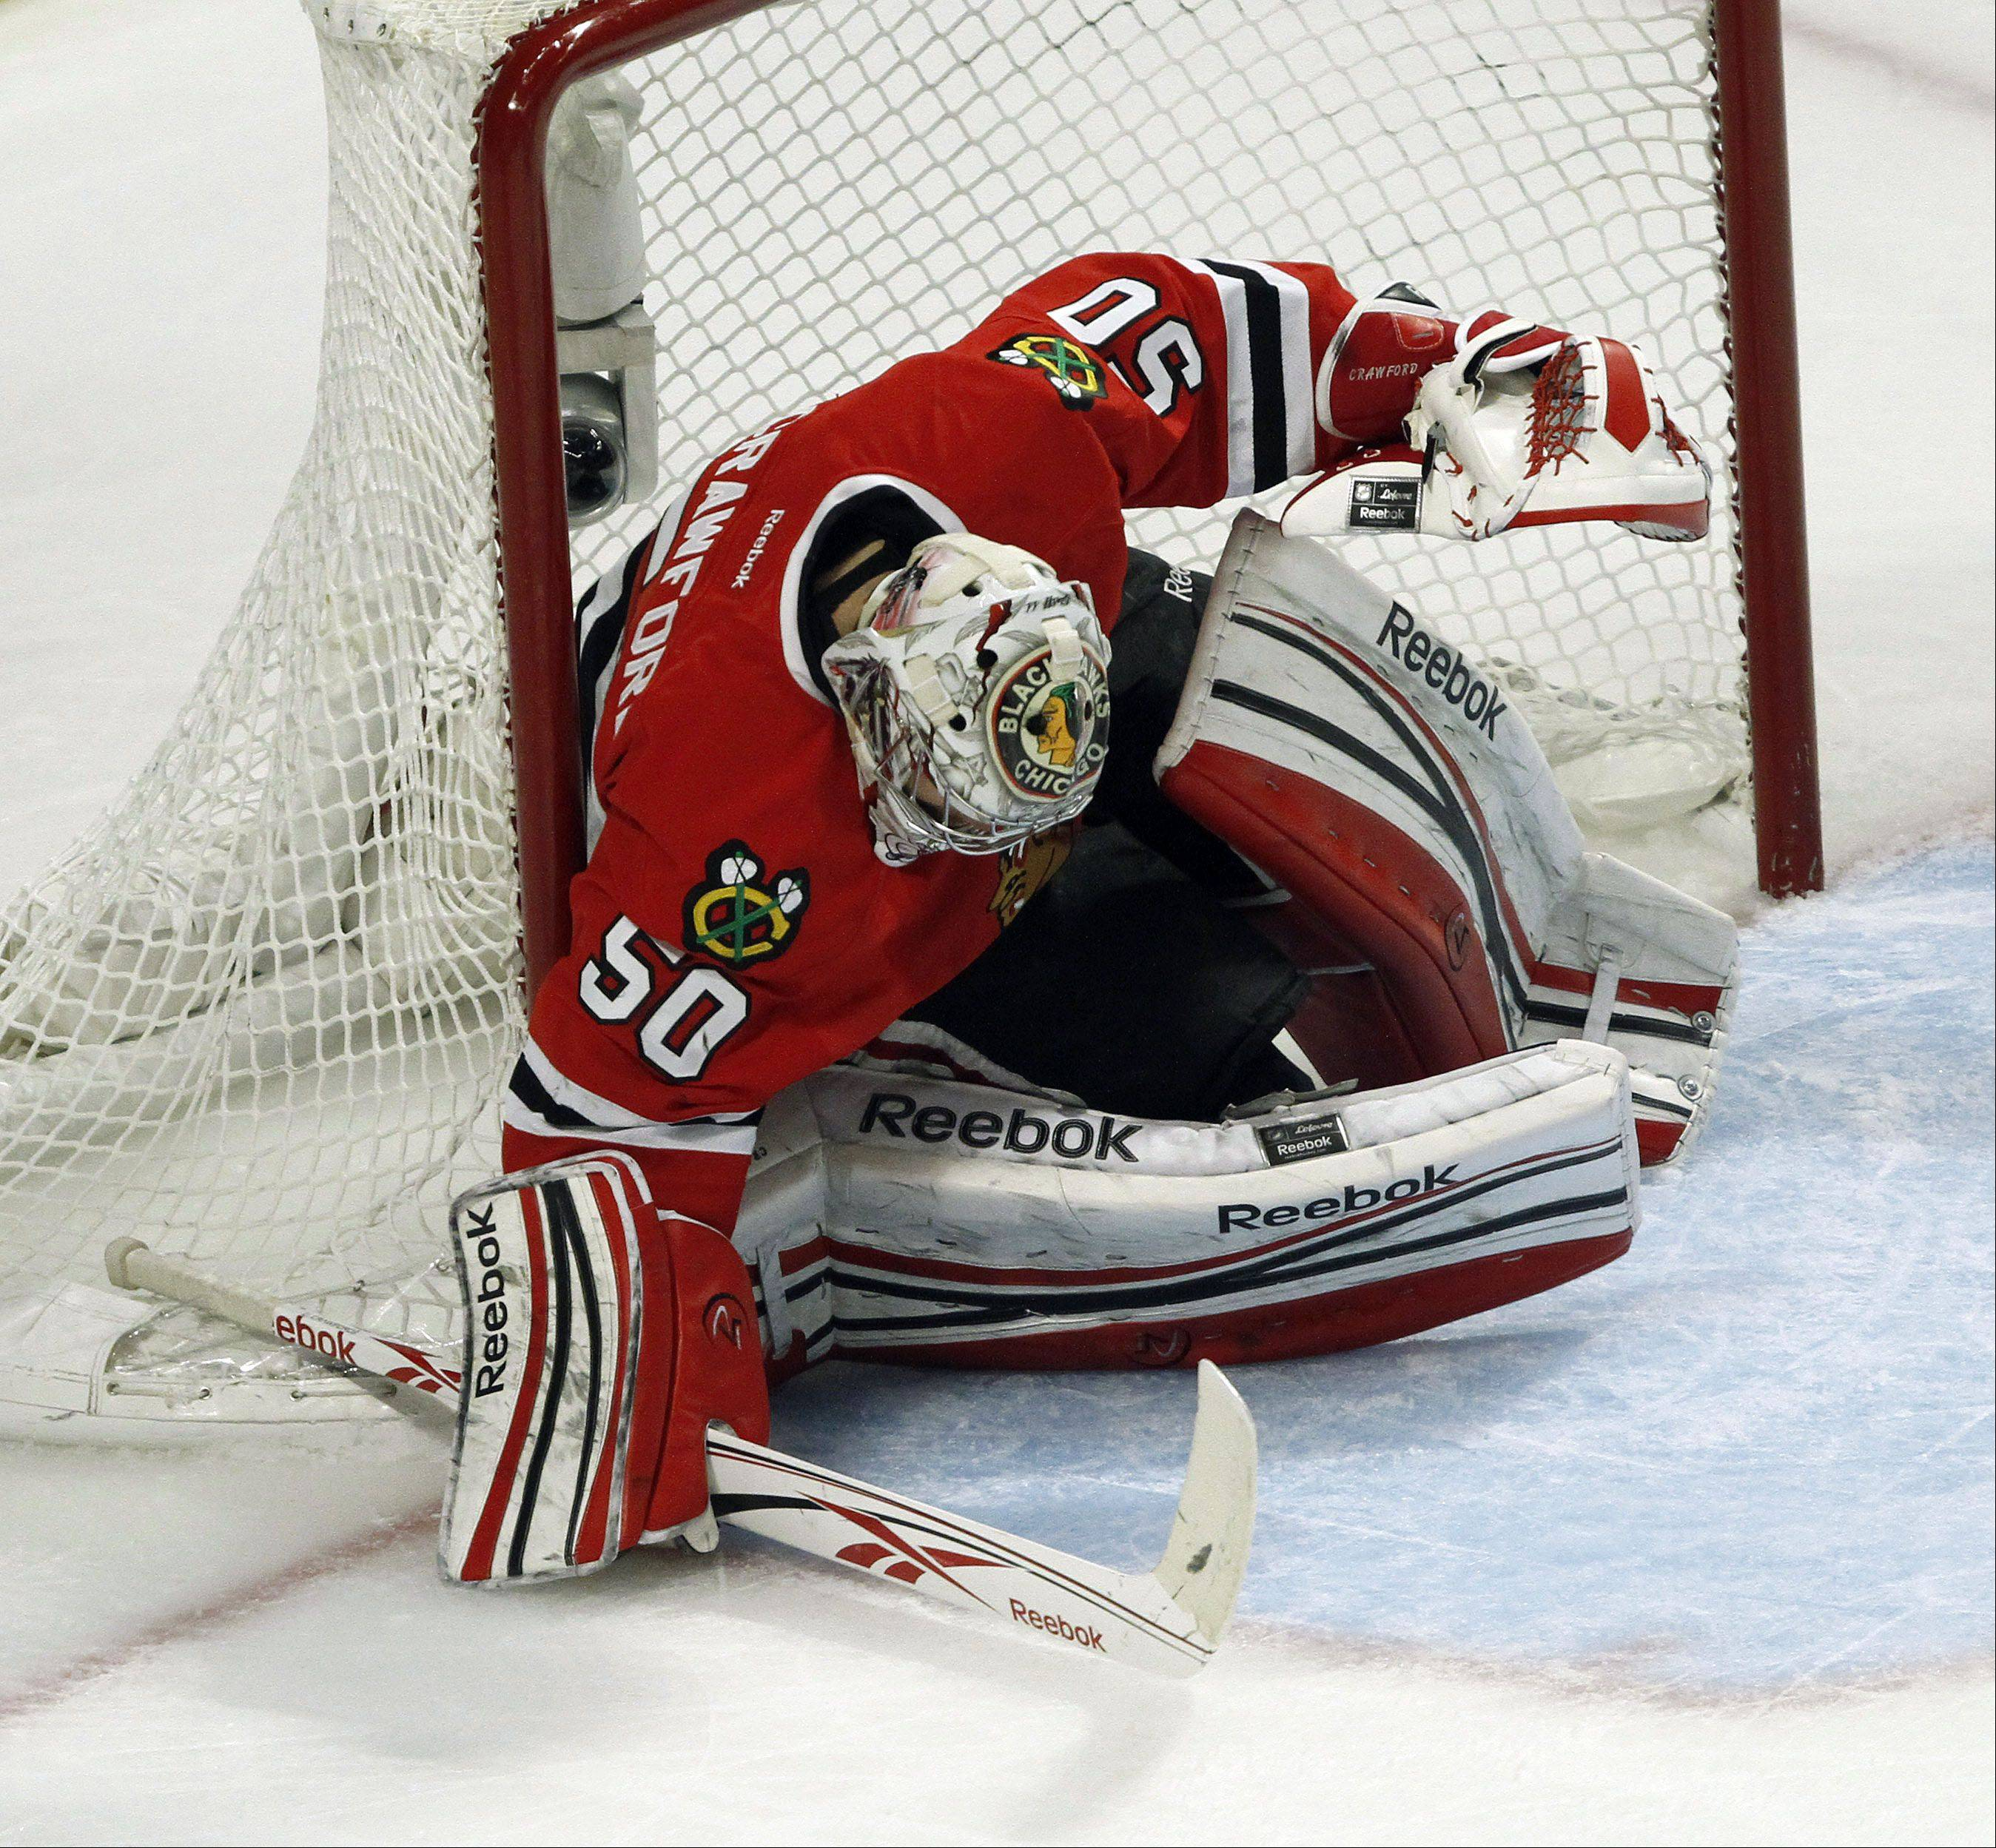 Chicago Blackhawks goalie Corey Crawford looks back as the winning goal goes into the net in overtime during Game 3 of the Western Conference quarterfinals at The United Center in Chicago Tuesday night. Hawks lost 3-2.